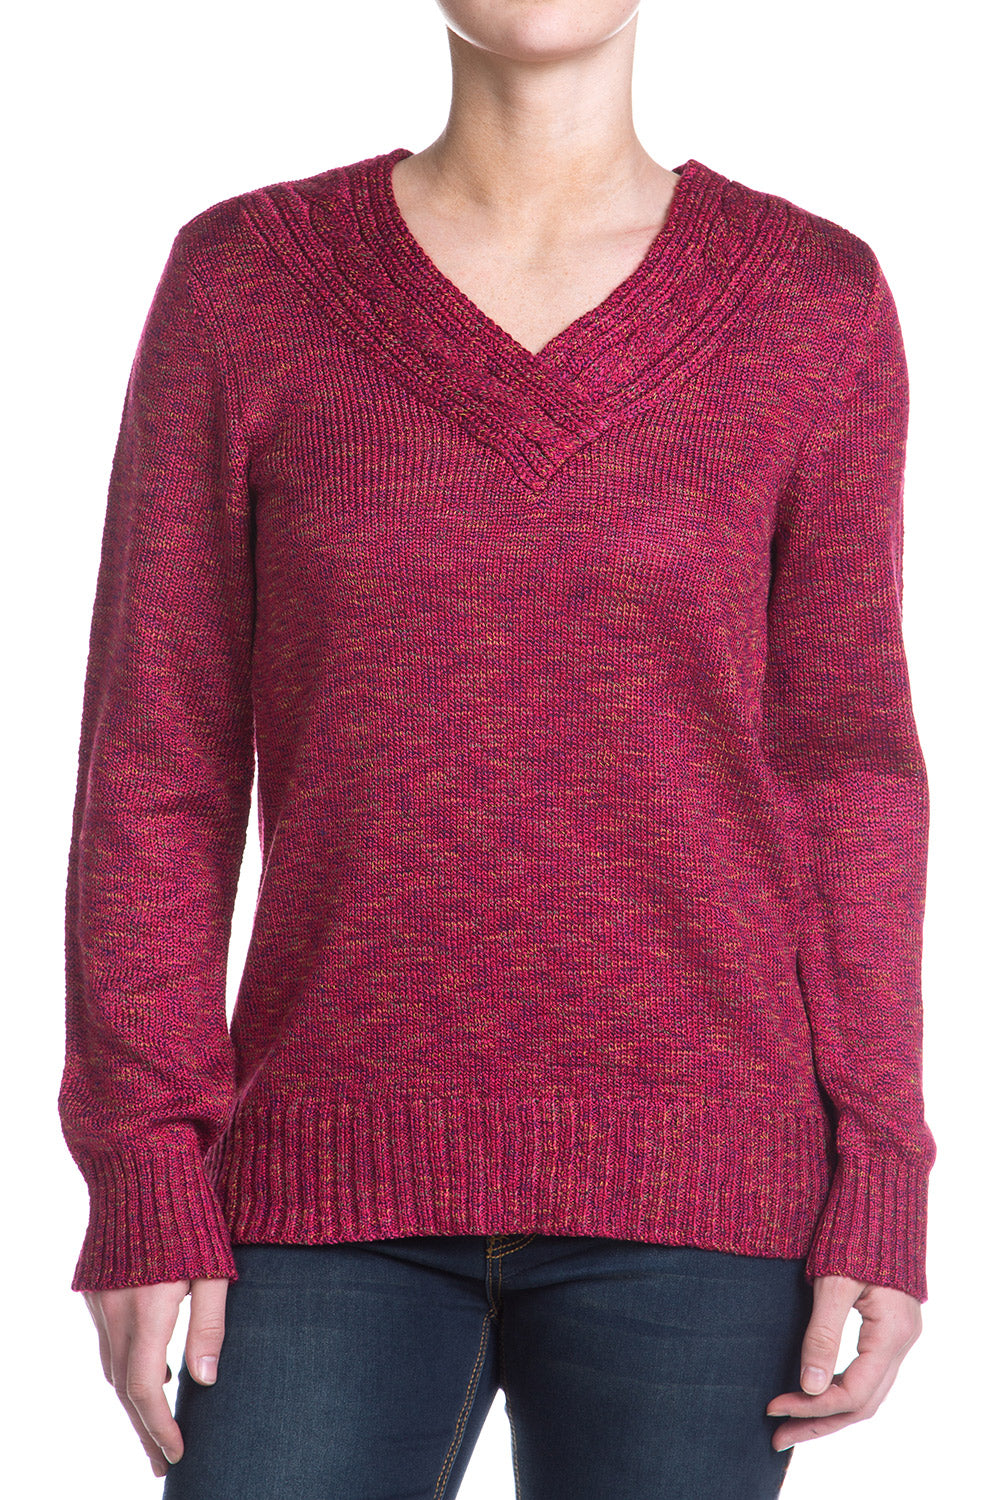 Type 3 Motown Sweater In Cranberry